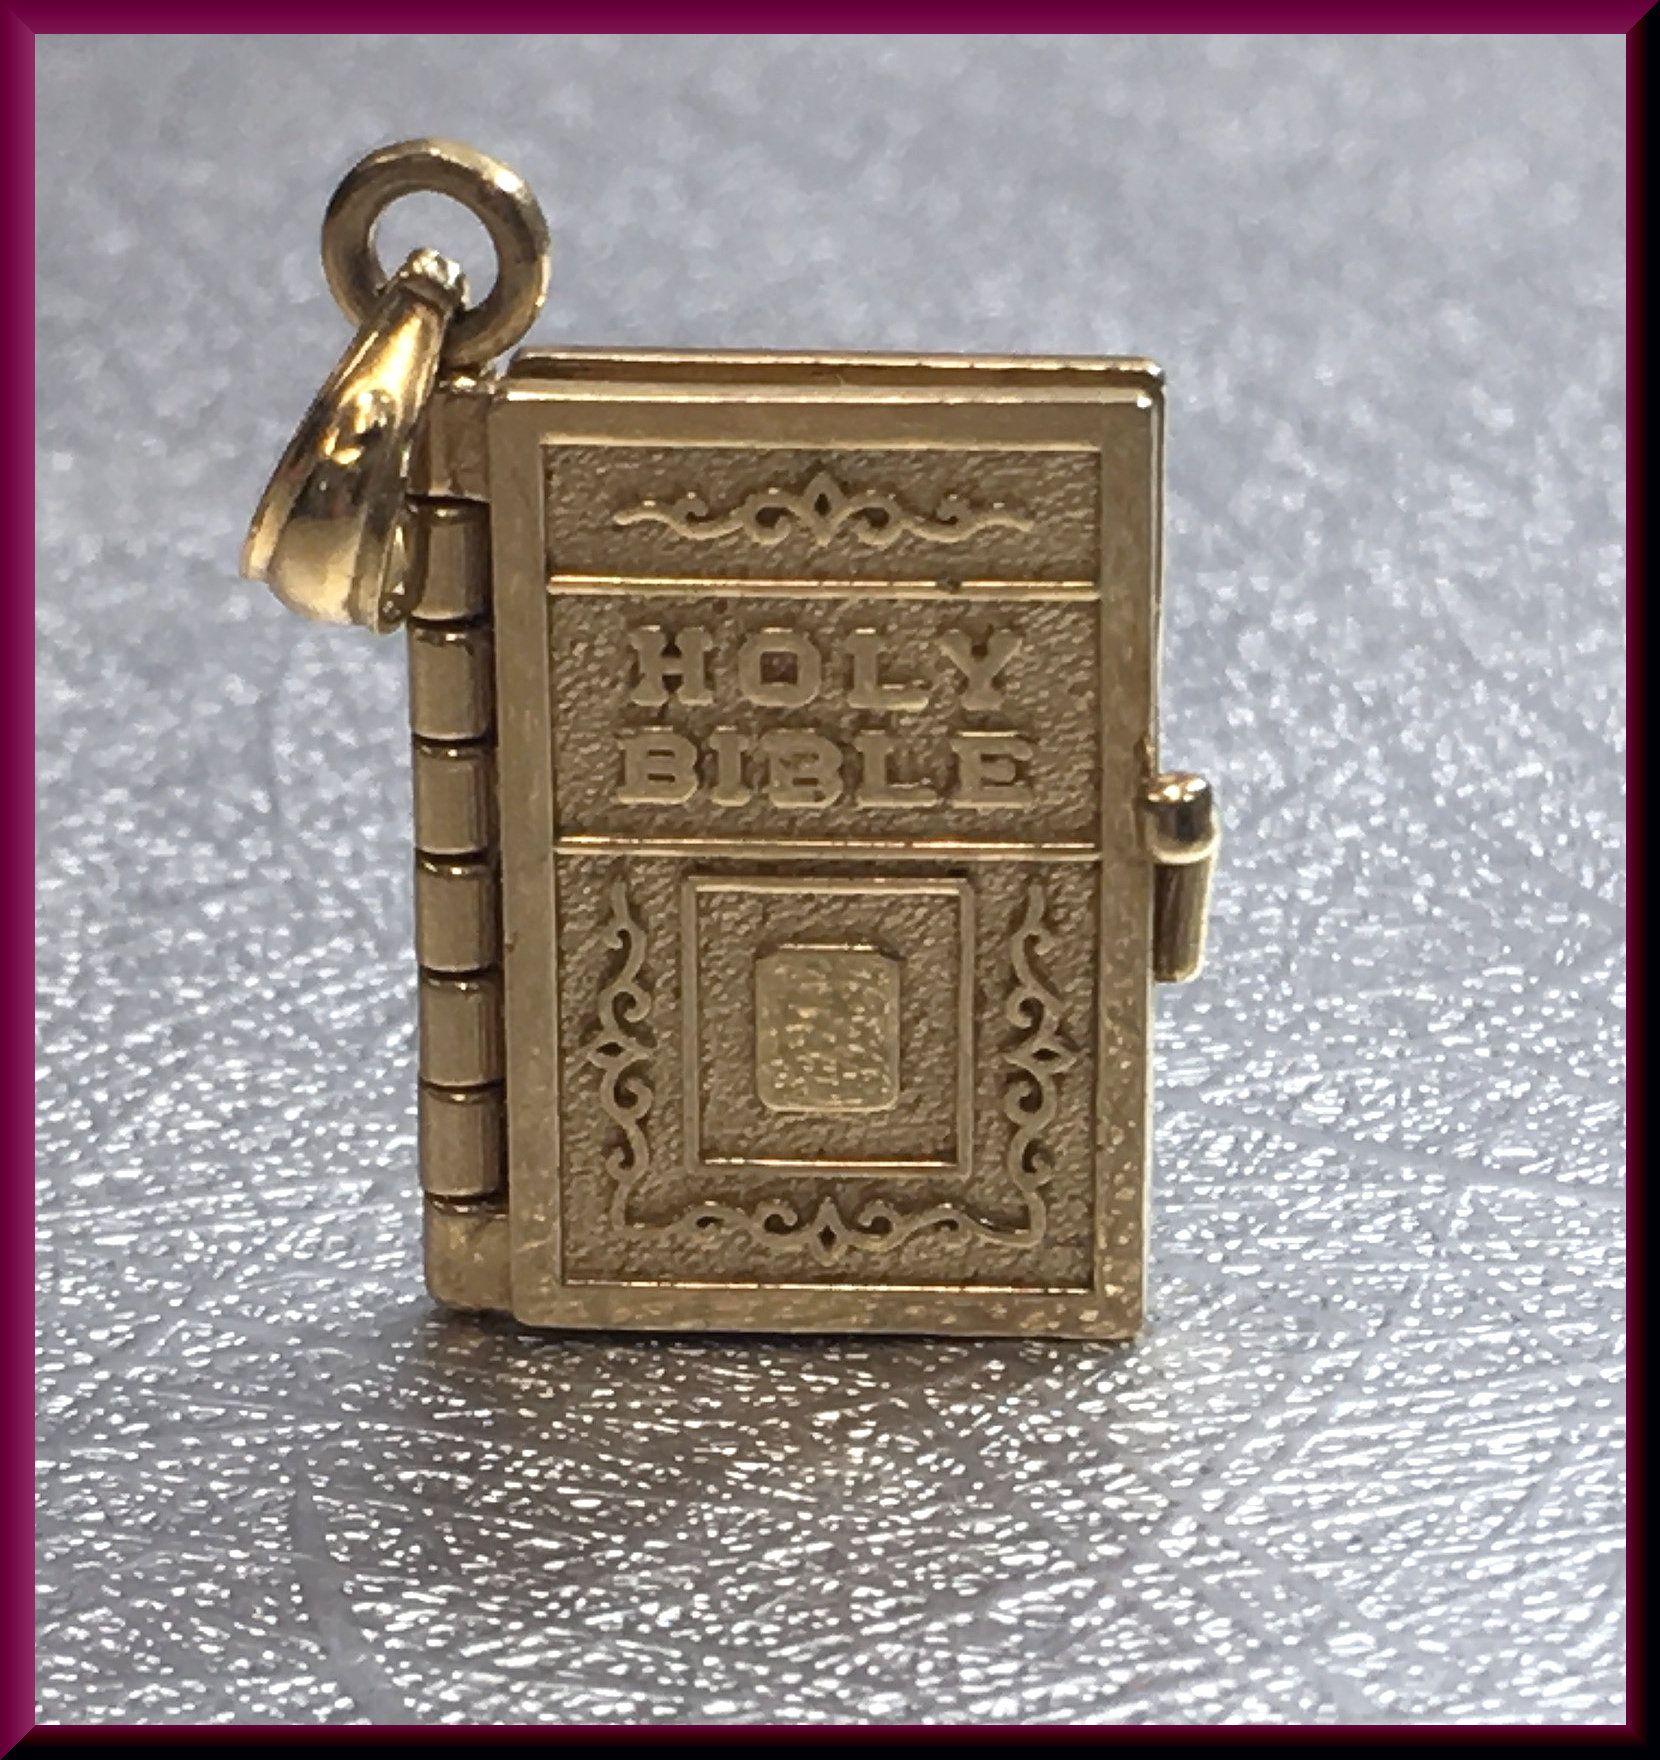 Holy Bible Charm Vintage Bible Charm Religious Charm Gold Charm Vintage Charm Lords Prayer Charm Bible Pendant Holy Bible Pendant